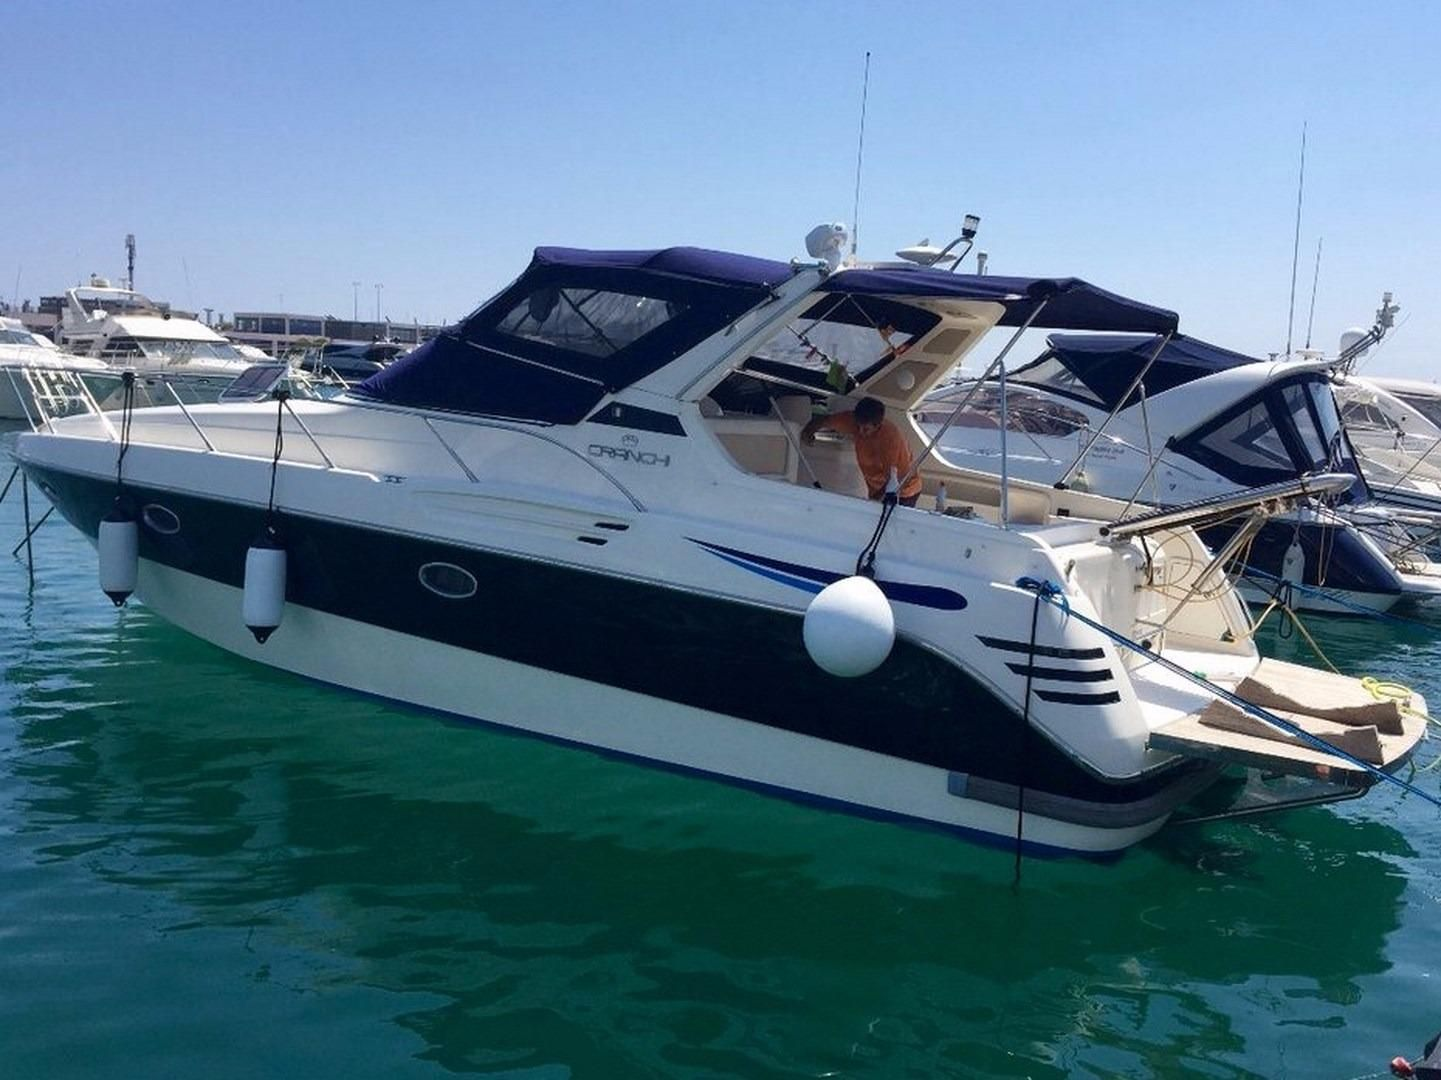 1997 Cranchi Smeraldo 36 Power Boat For Sale